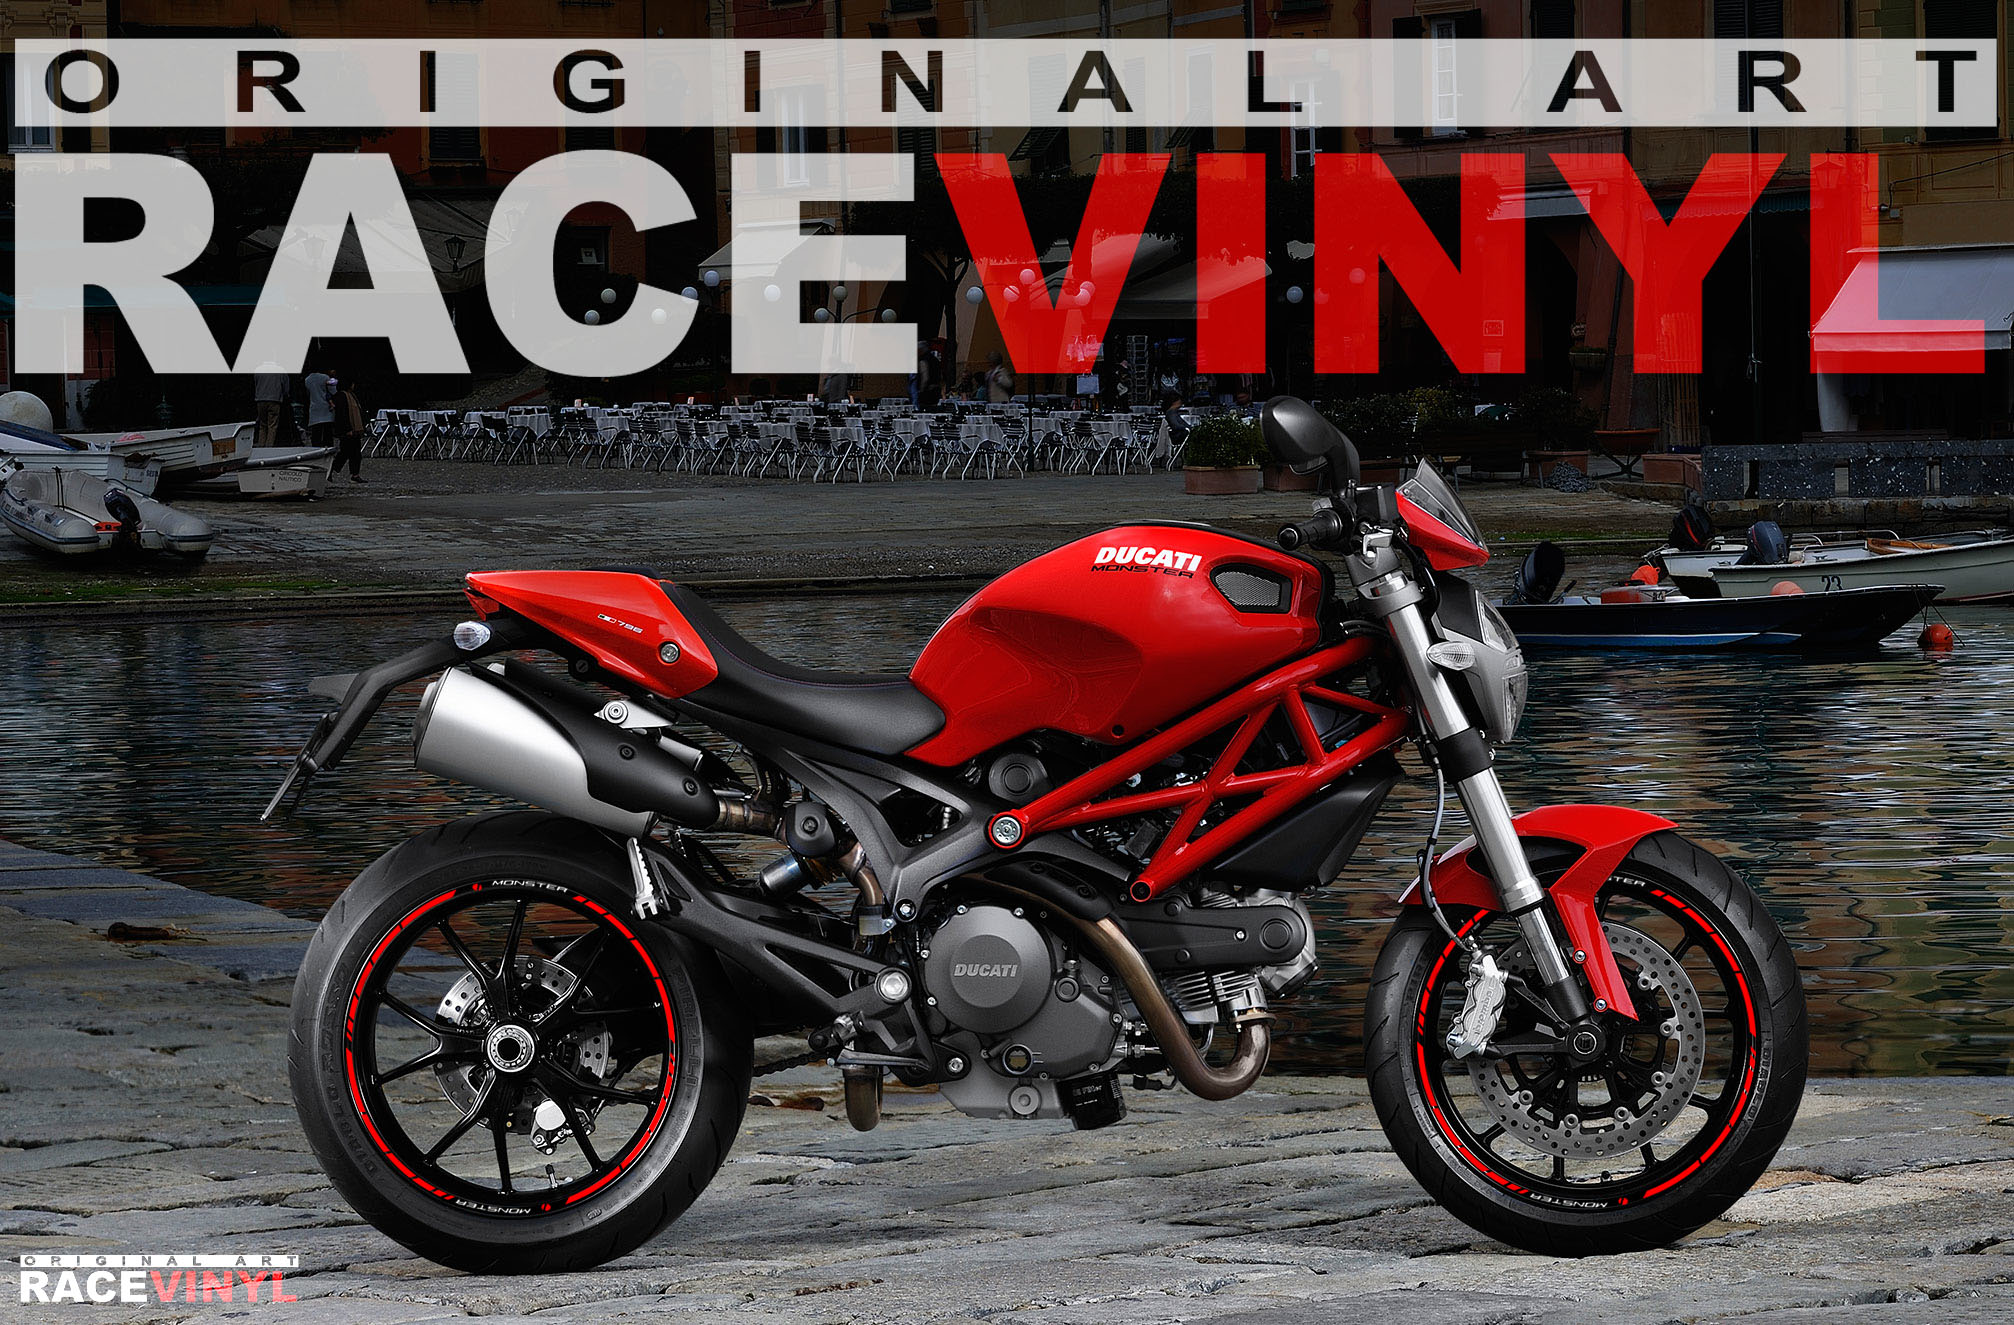 Racevinyl-wallpaper-Ducati-Monster-620-659-696-750-796-800-900-1000-1100-1200-ie-S-EVO-S2R-S4R-S4RS-Custom-Tuning-Pegatina-llanta-moto-adhesivo-vinilo-sticker-stripe-rim-wheel-vinyl-race-logo.jpg